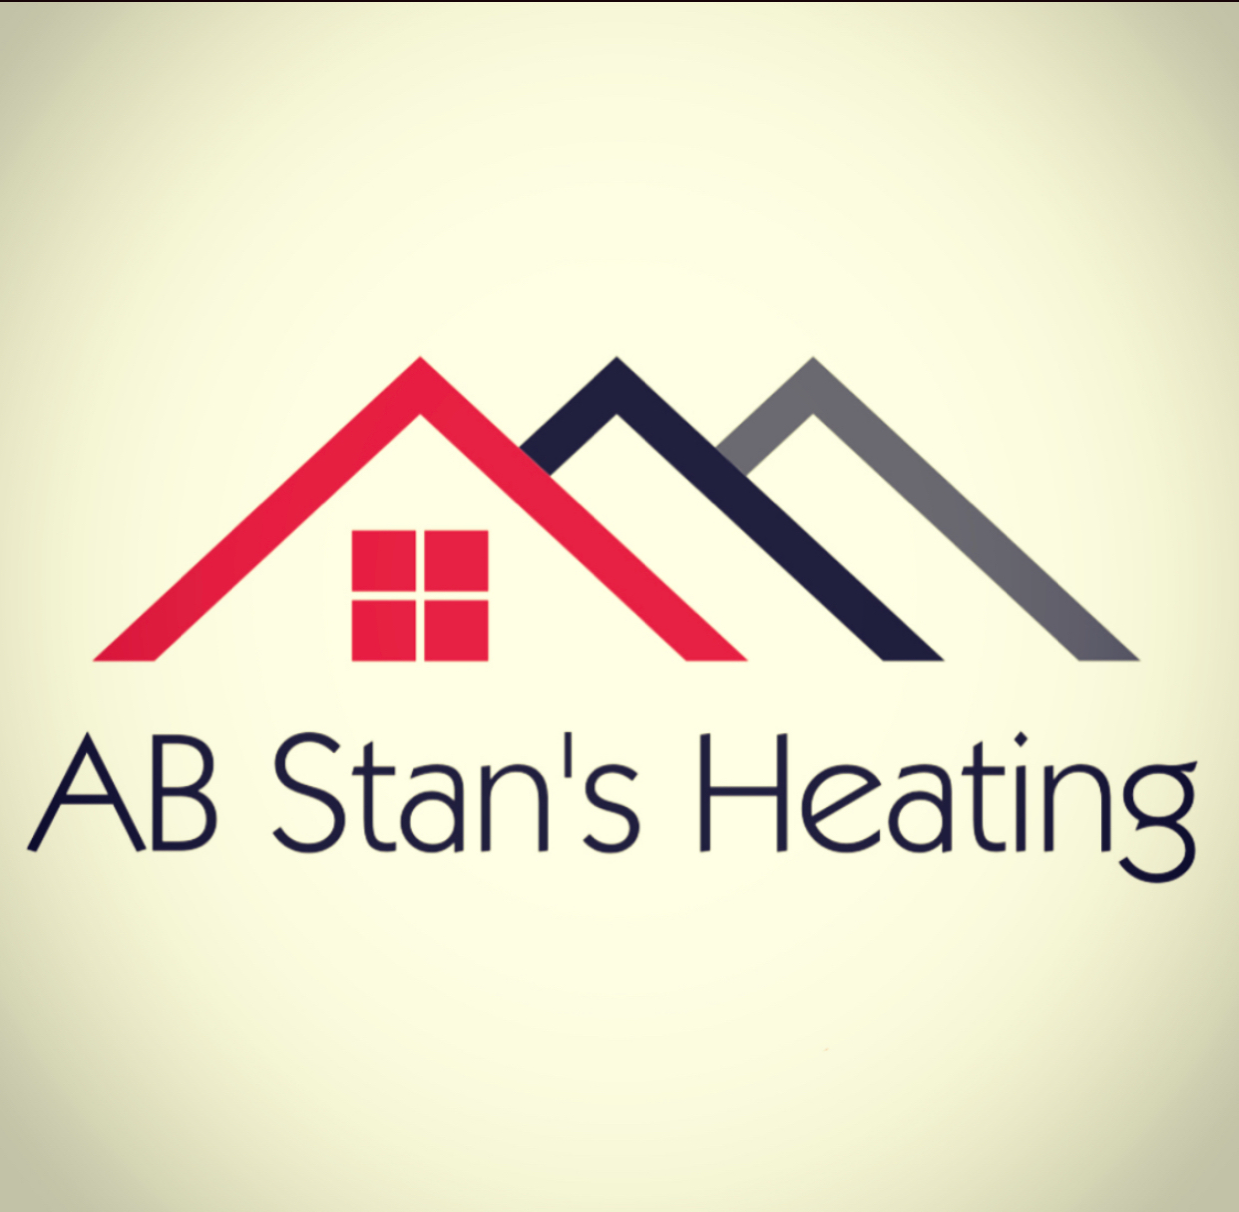 AB Stans Heating